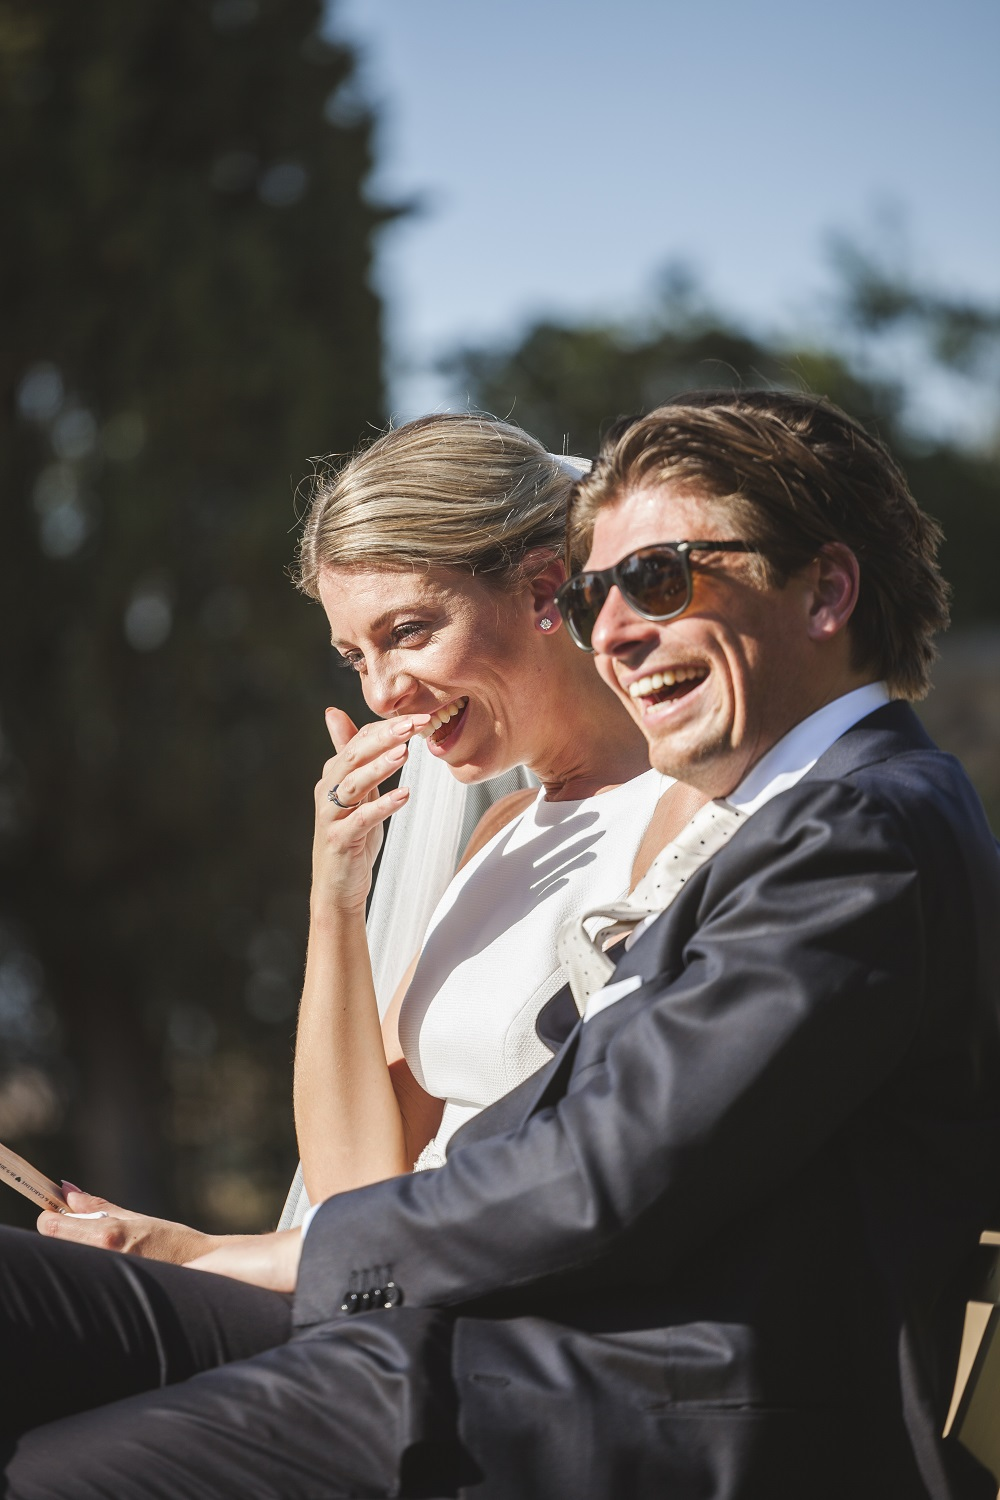 Emotion and humor in the wedding ceremony